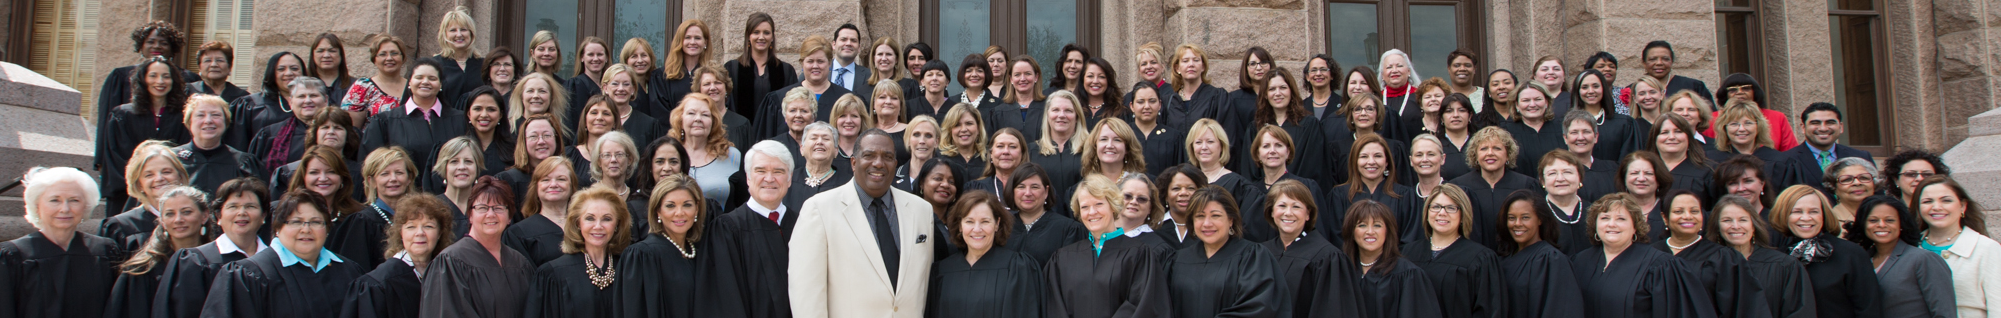 Female Judges Day 2015 Group Photo